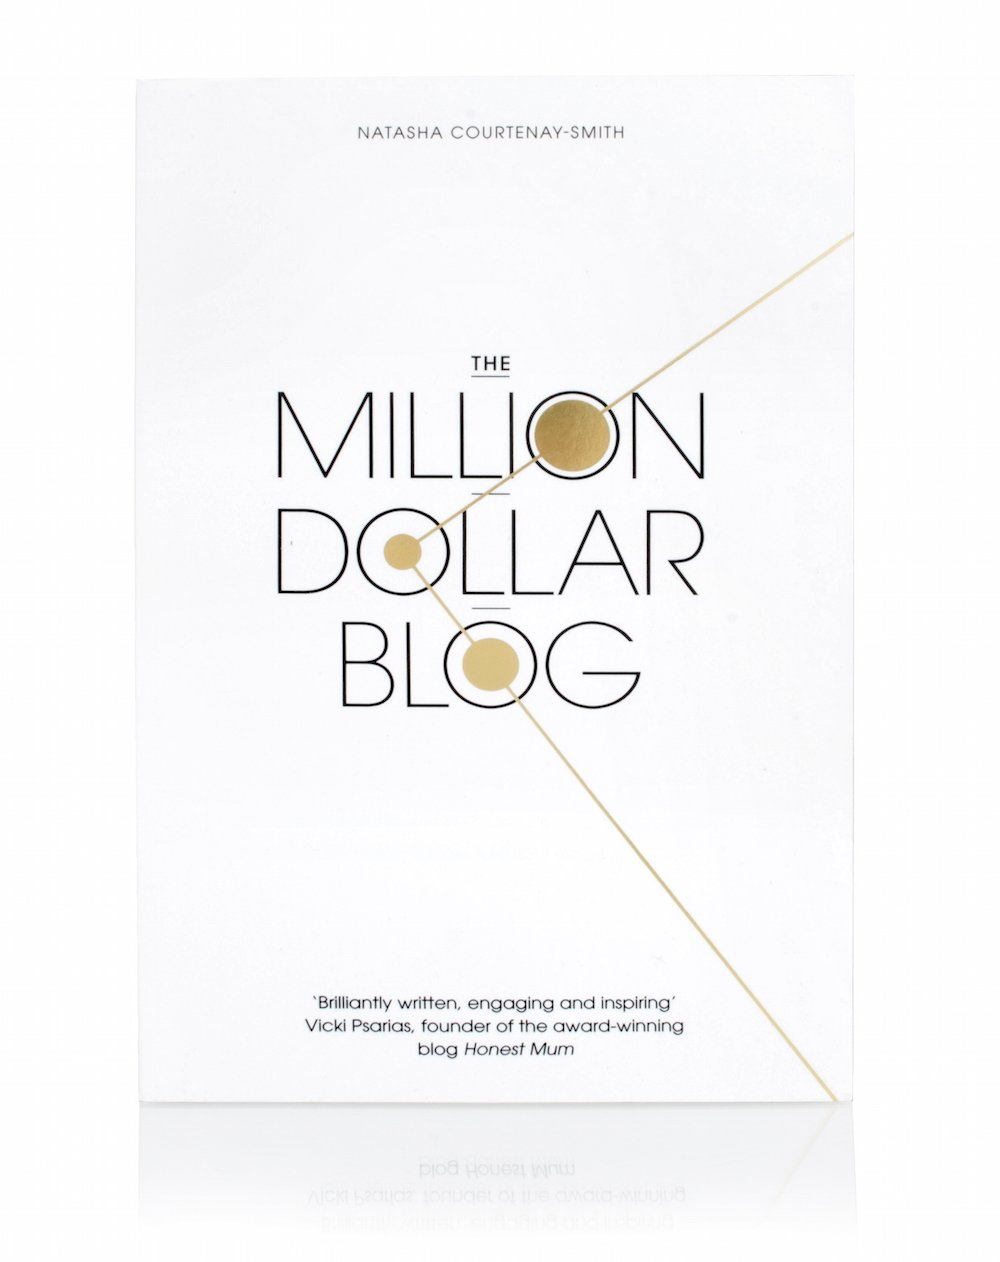 The Million Dollar Blog: Amazon.es: Courtenay-Smith Natasha: Libros en idiomas extranjeros